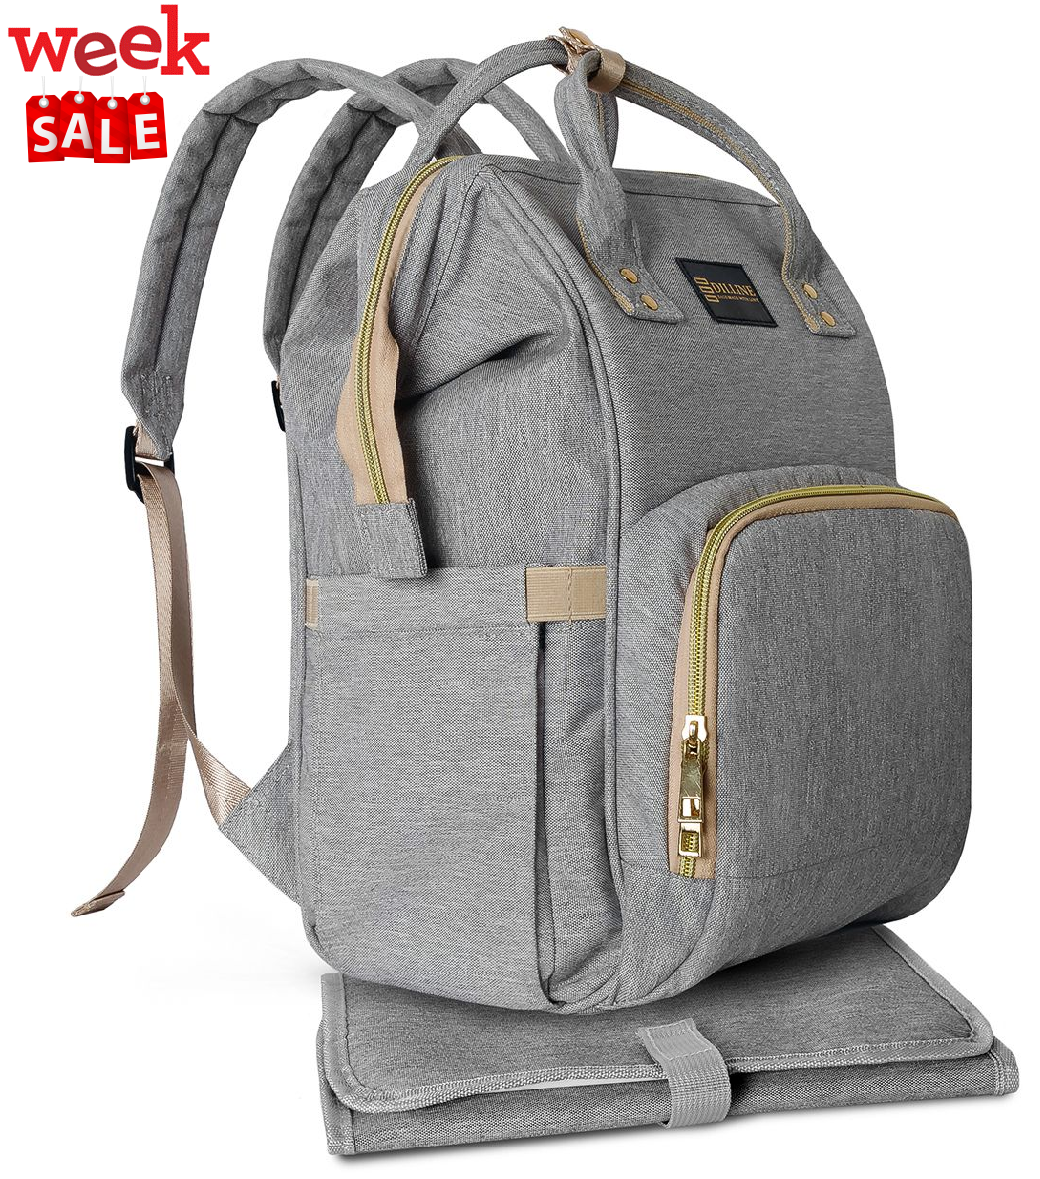 20 Diaper Bag Backpack Multi Function Waterproof Travel Maternity Ny Organizer With